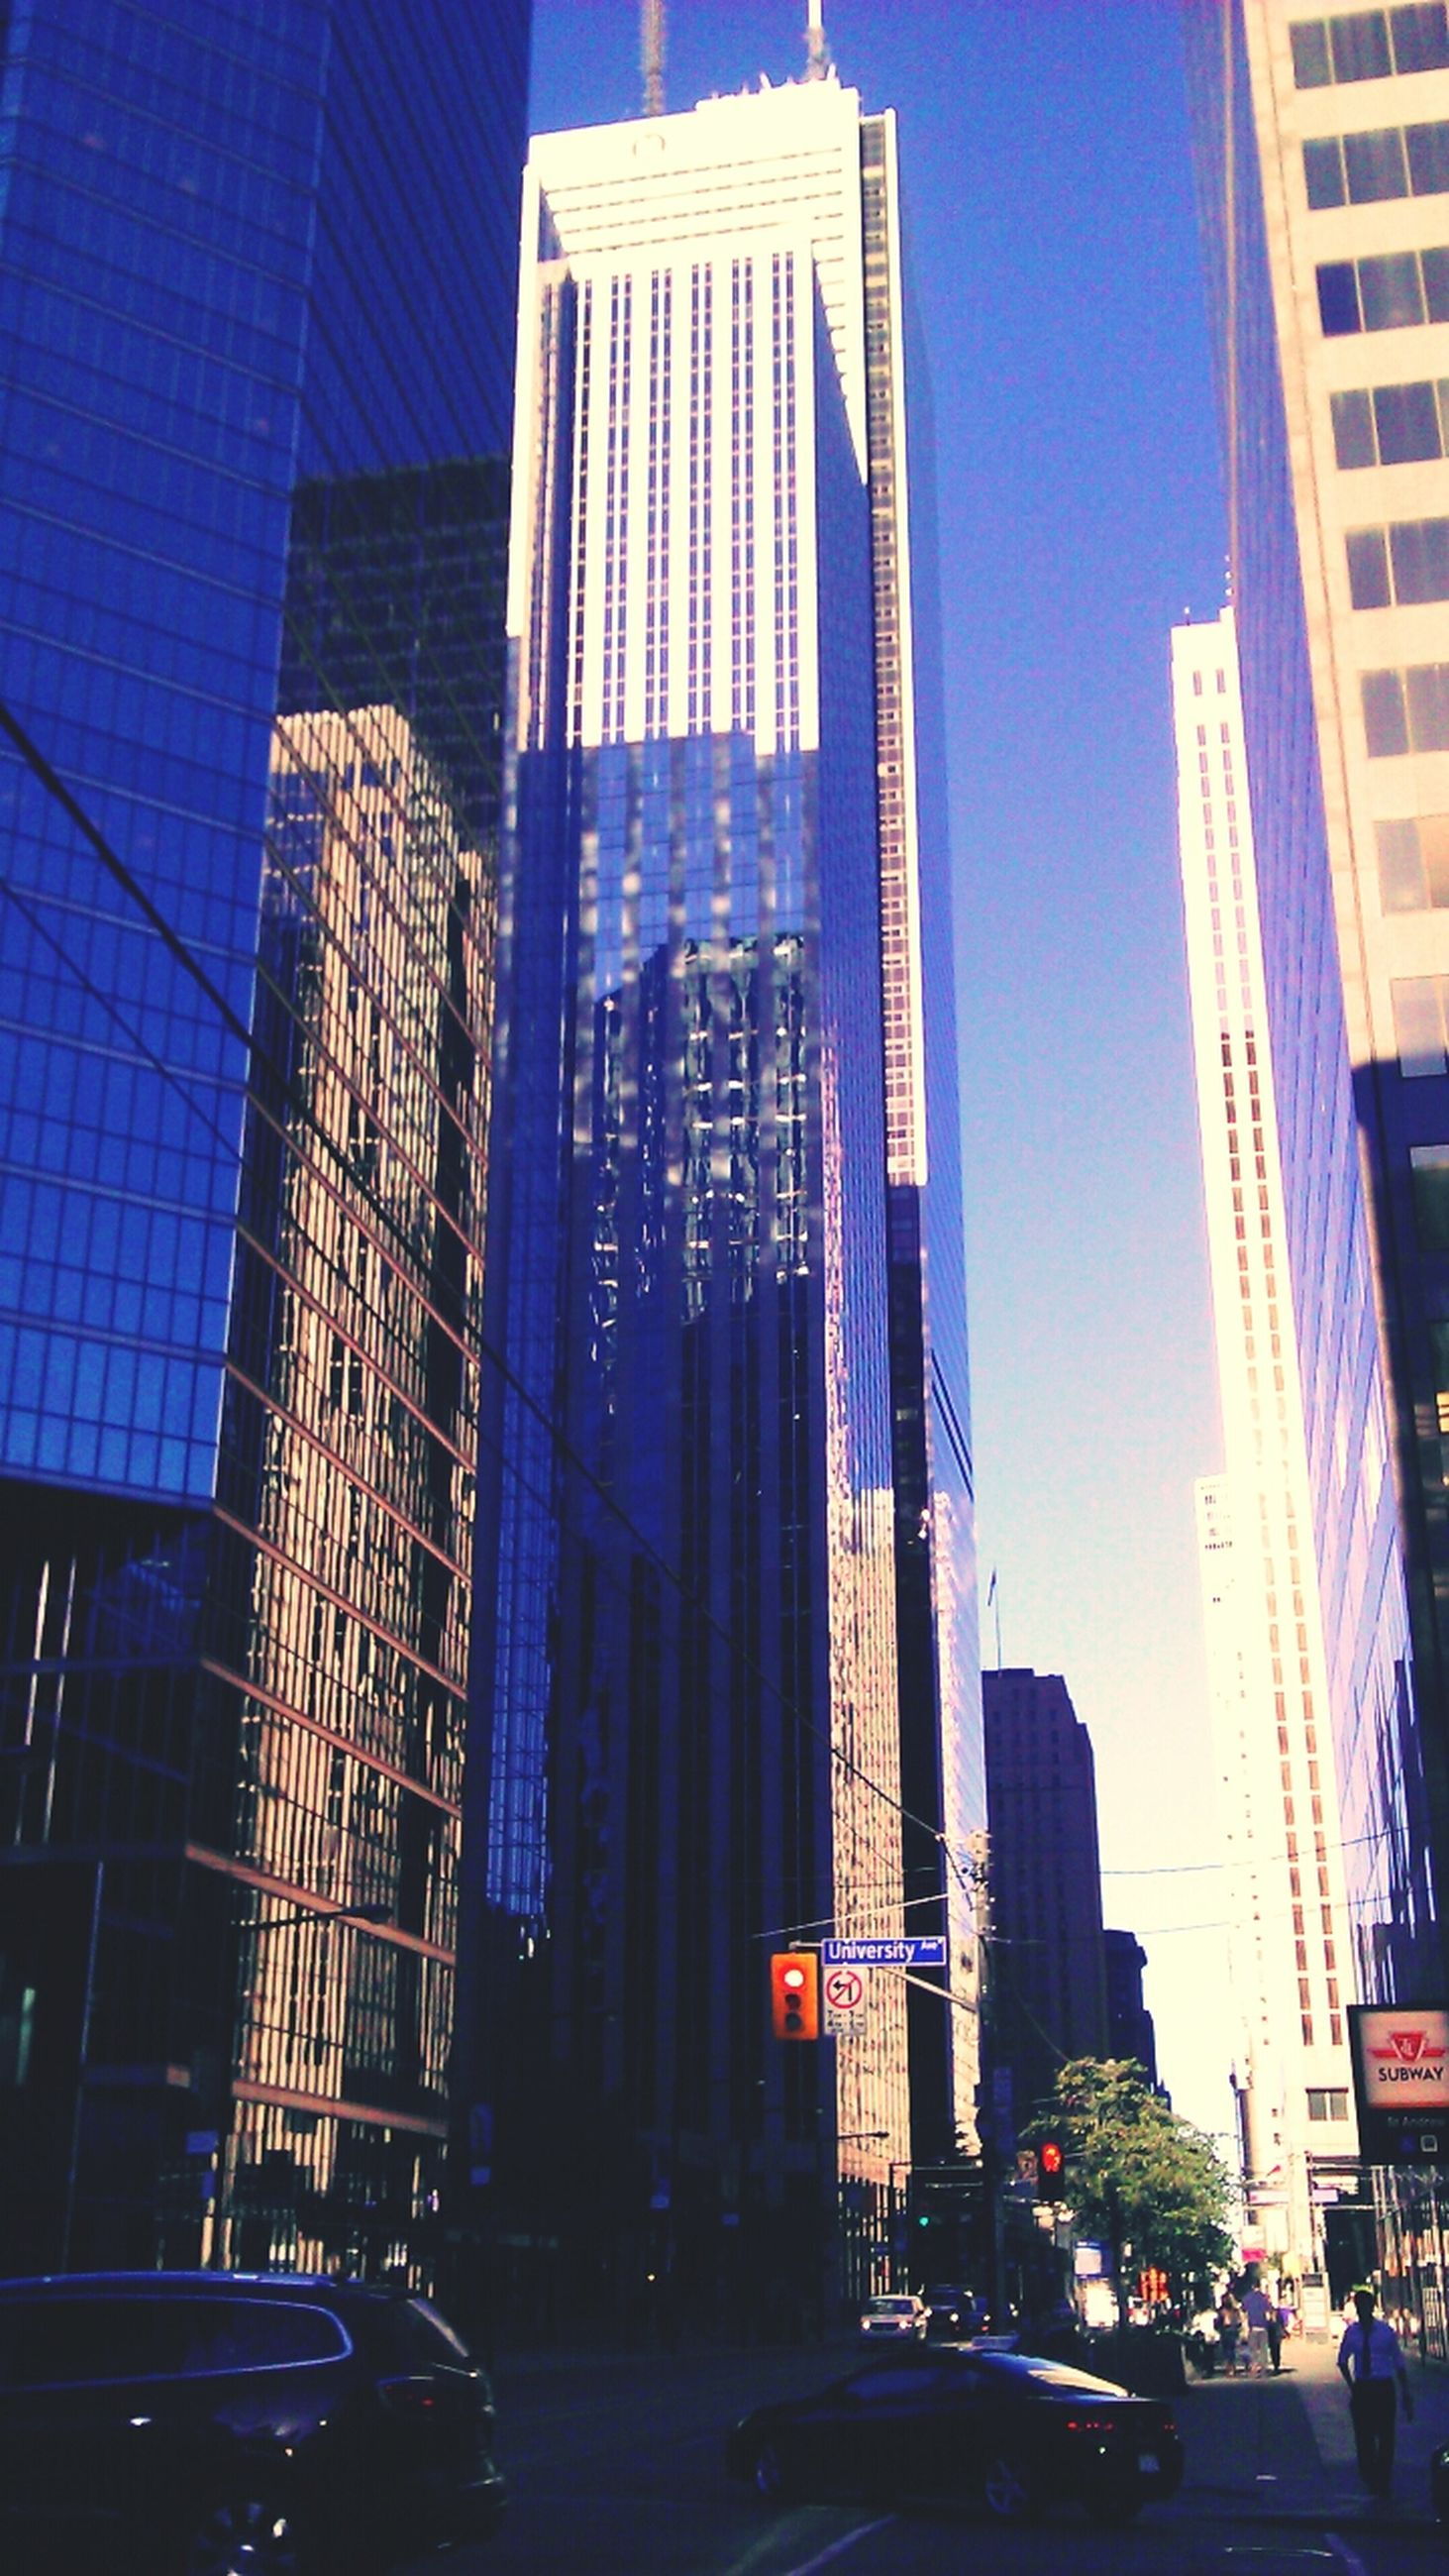 building exterior, architecture, built structure, city, skyscraper, modern, office building, tall - high, illuminated, low angle view, building, blue, tower, city life, car, clear sky, street, night, financial district, transportation